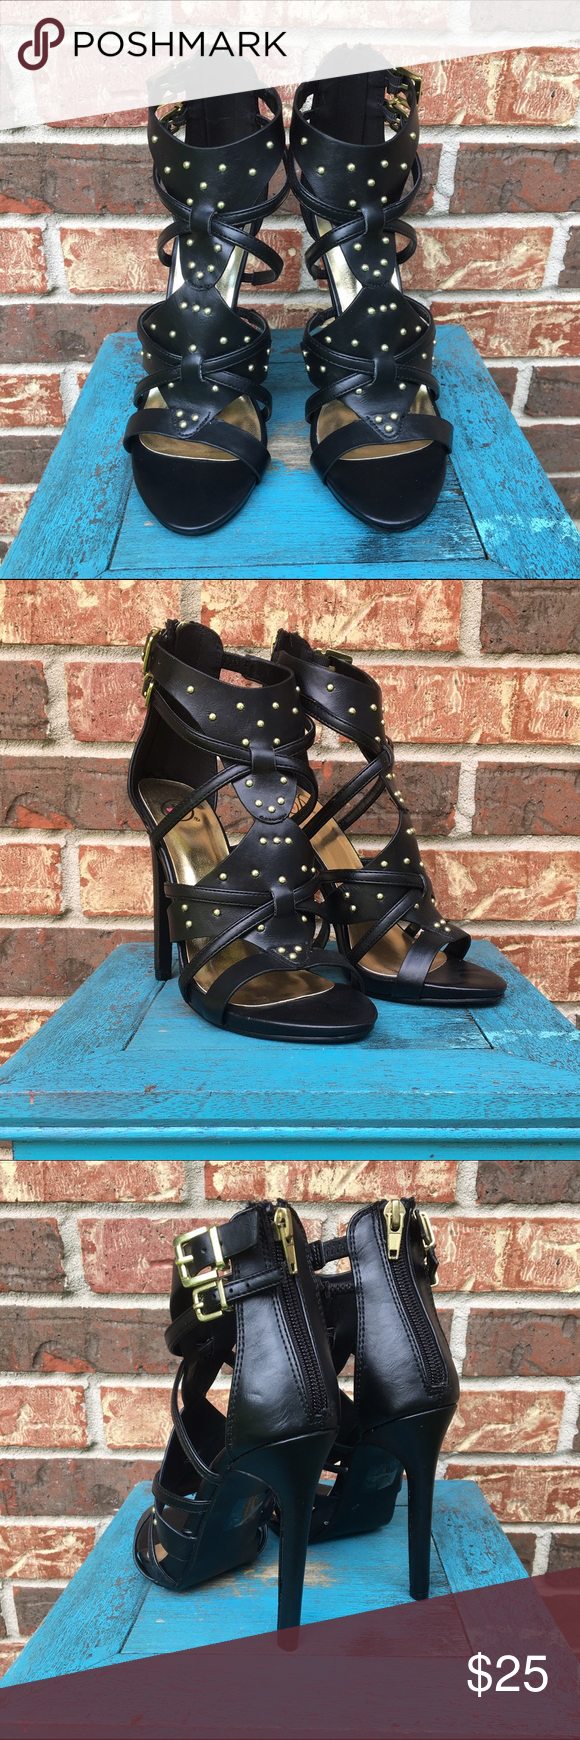 Black heels Black heels with gold stud accents. Zipper back. Perfect condition. Shoes Heels